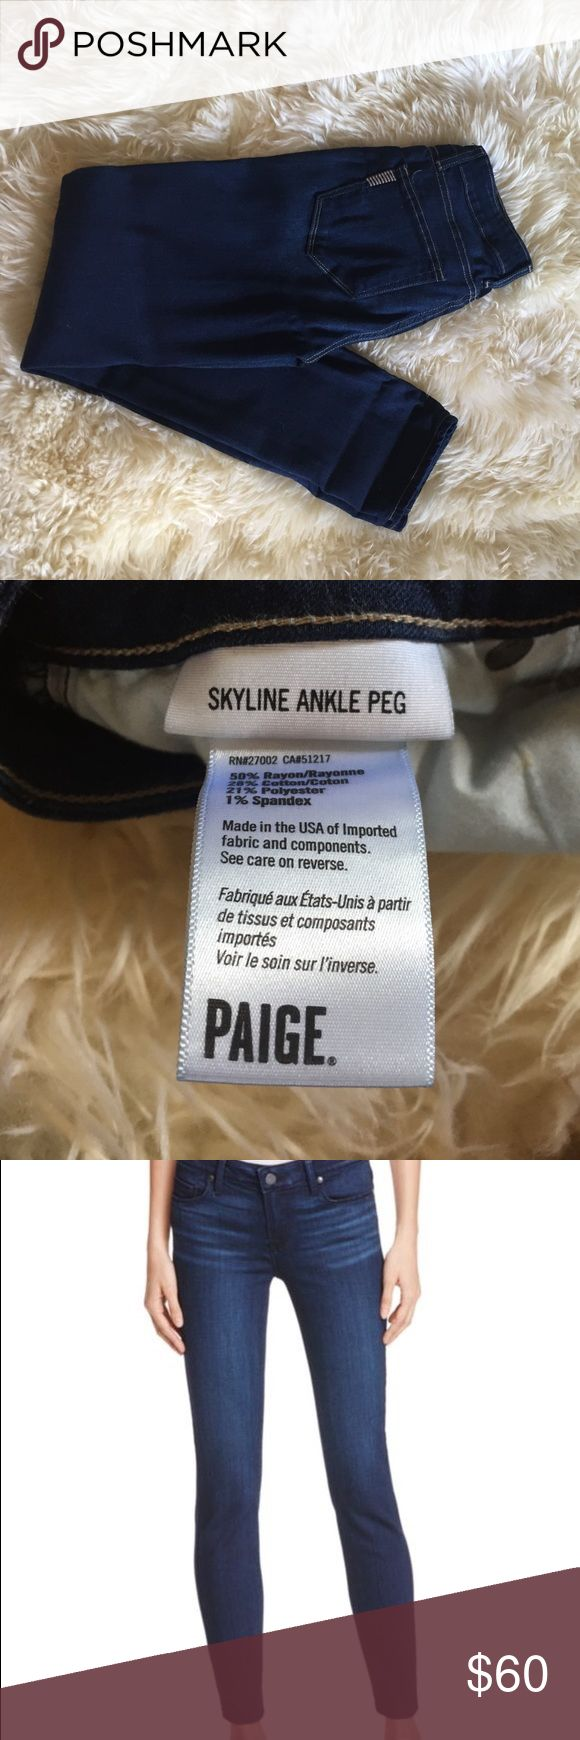 Paige Skyline Ankle Peg Denim Size 25, great condition, only worn a handful of times. 50% rayon, 42% cotton, 2% spandex, light stretch to them. Like new. I stand behind the quality of all my gently used items for sale. Bundle to save on shipping and for bundle discounts! Thank you for looking! Paige Jeans Jeans